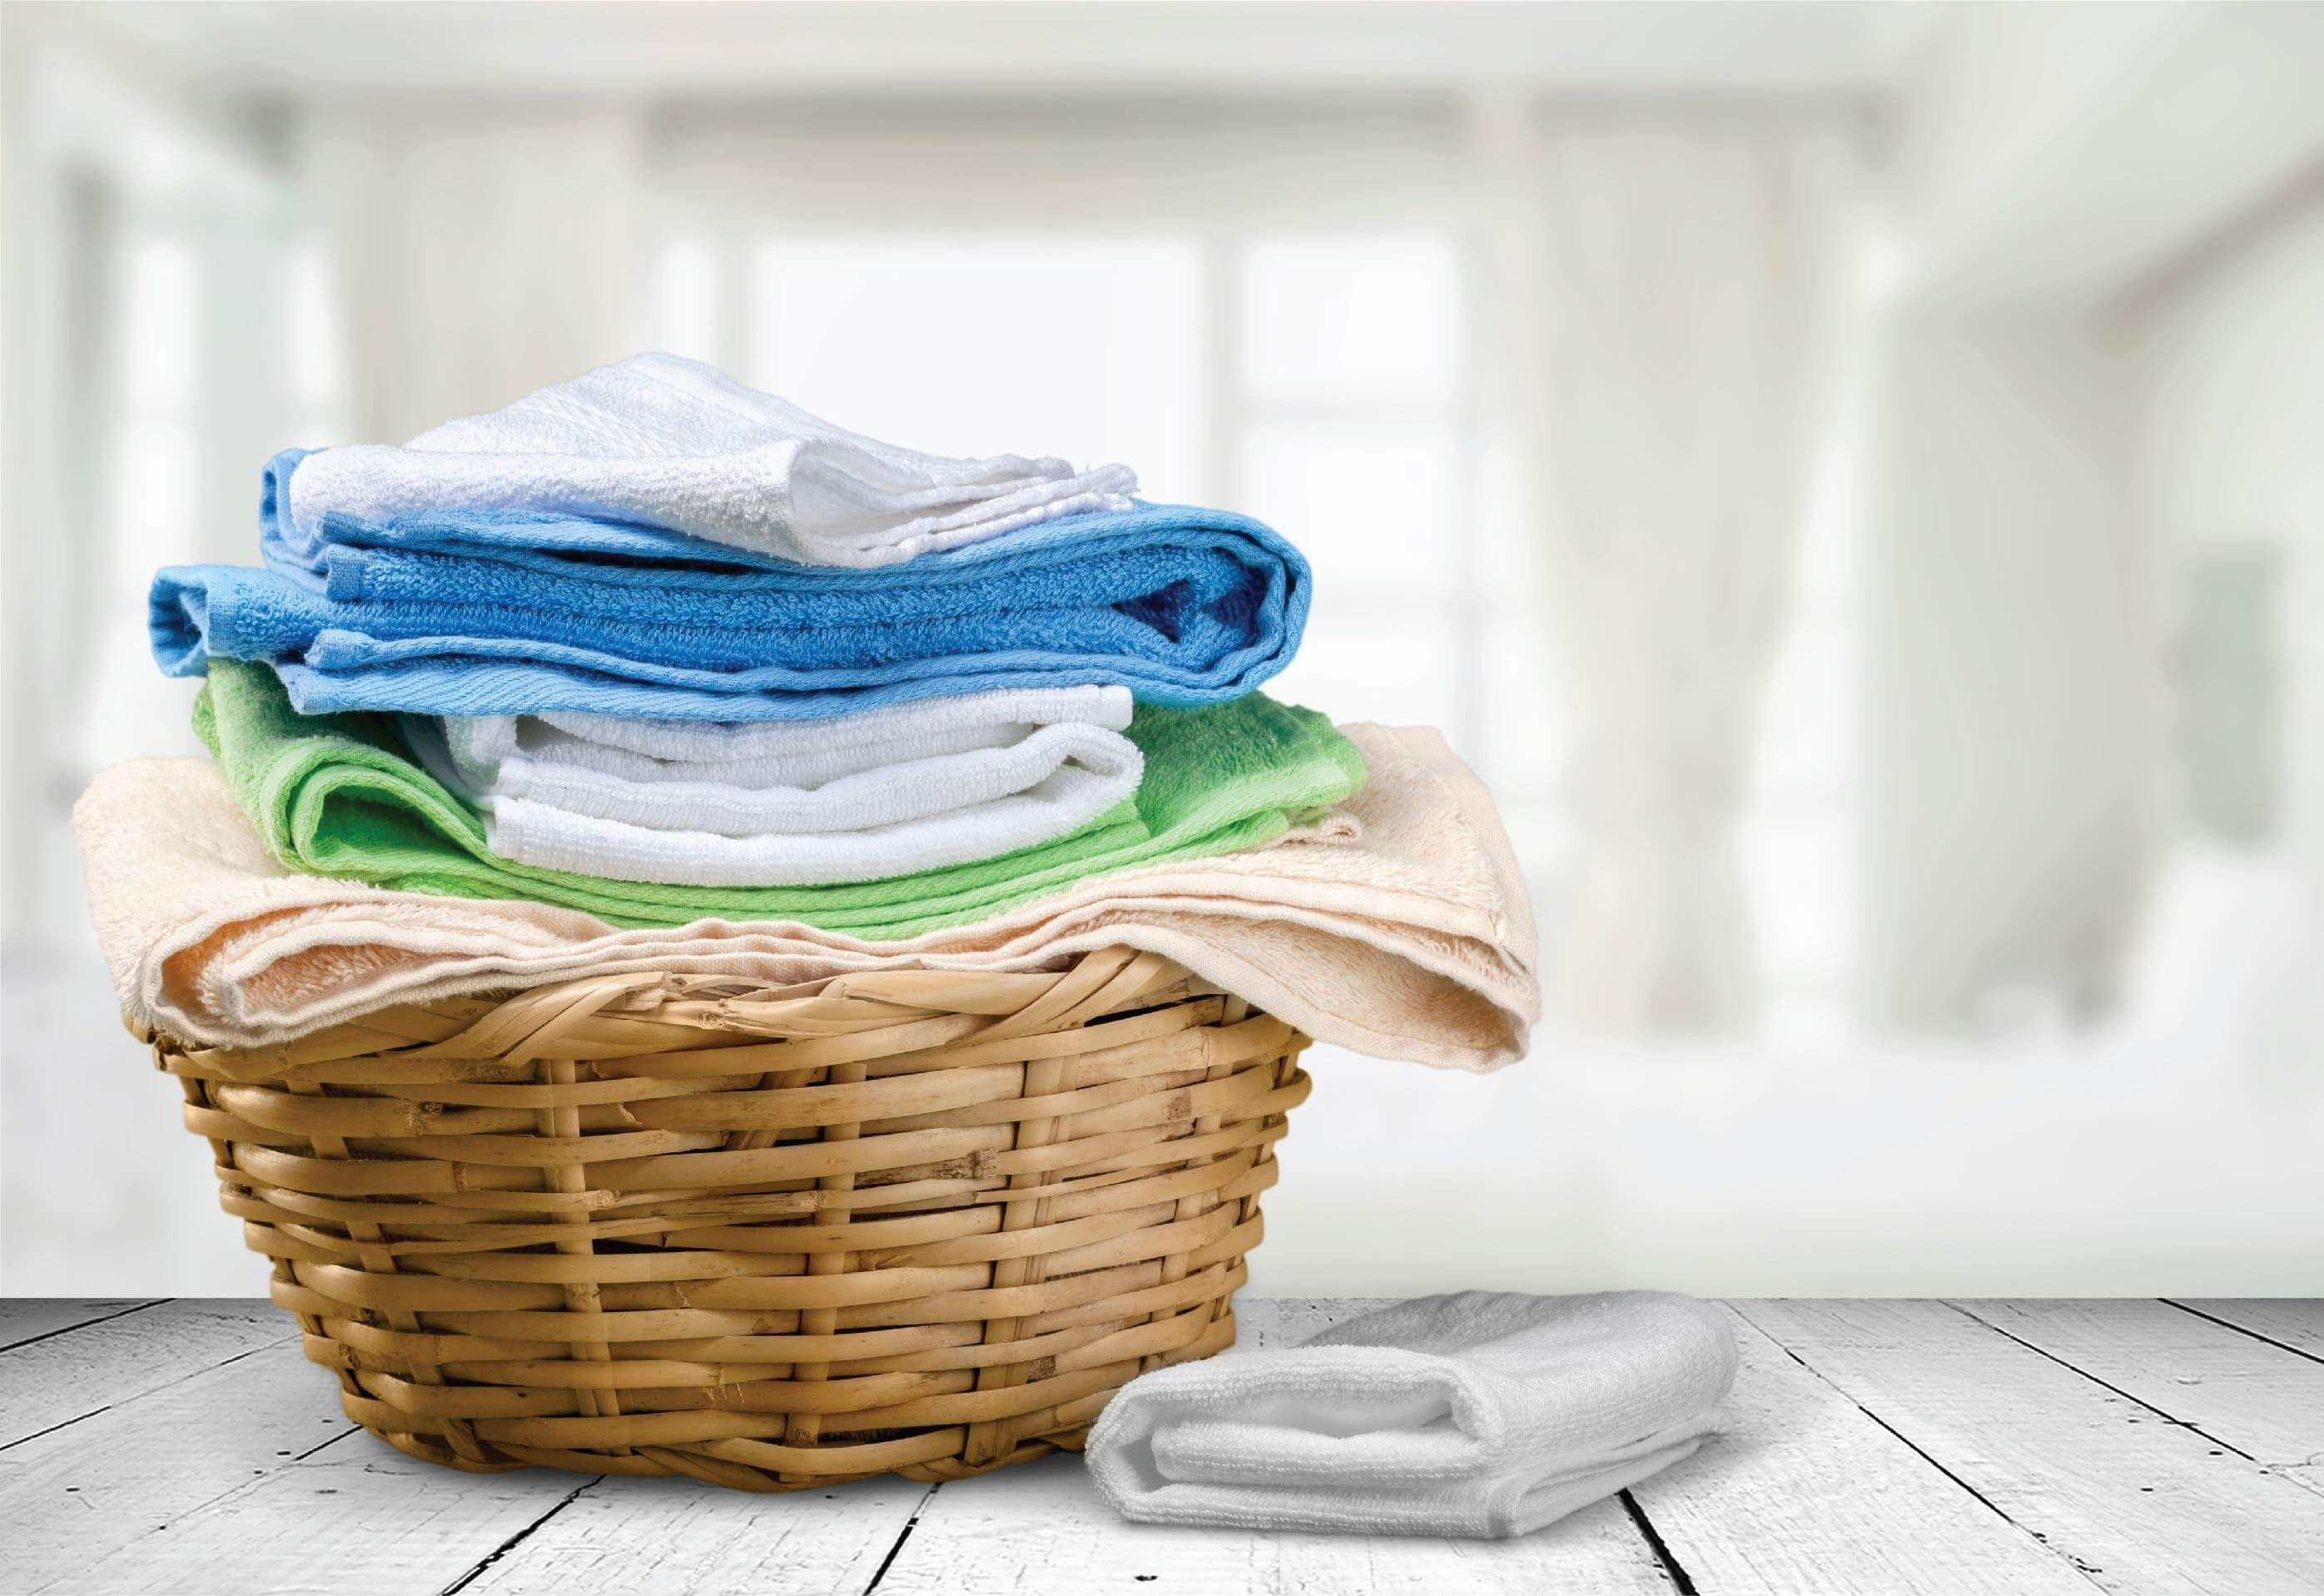 A wooden laundry basket with nicely folded washing piled up.